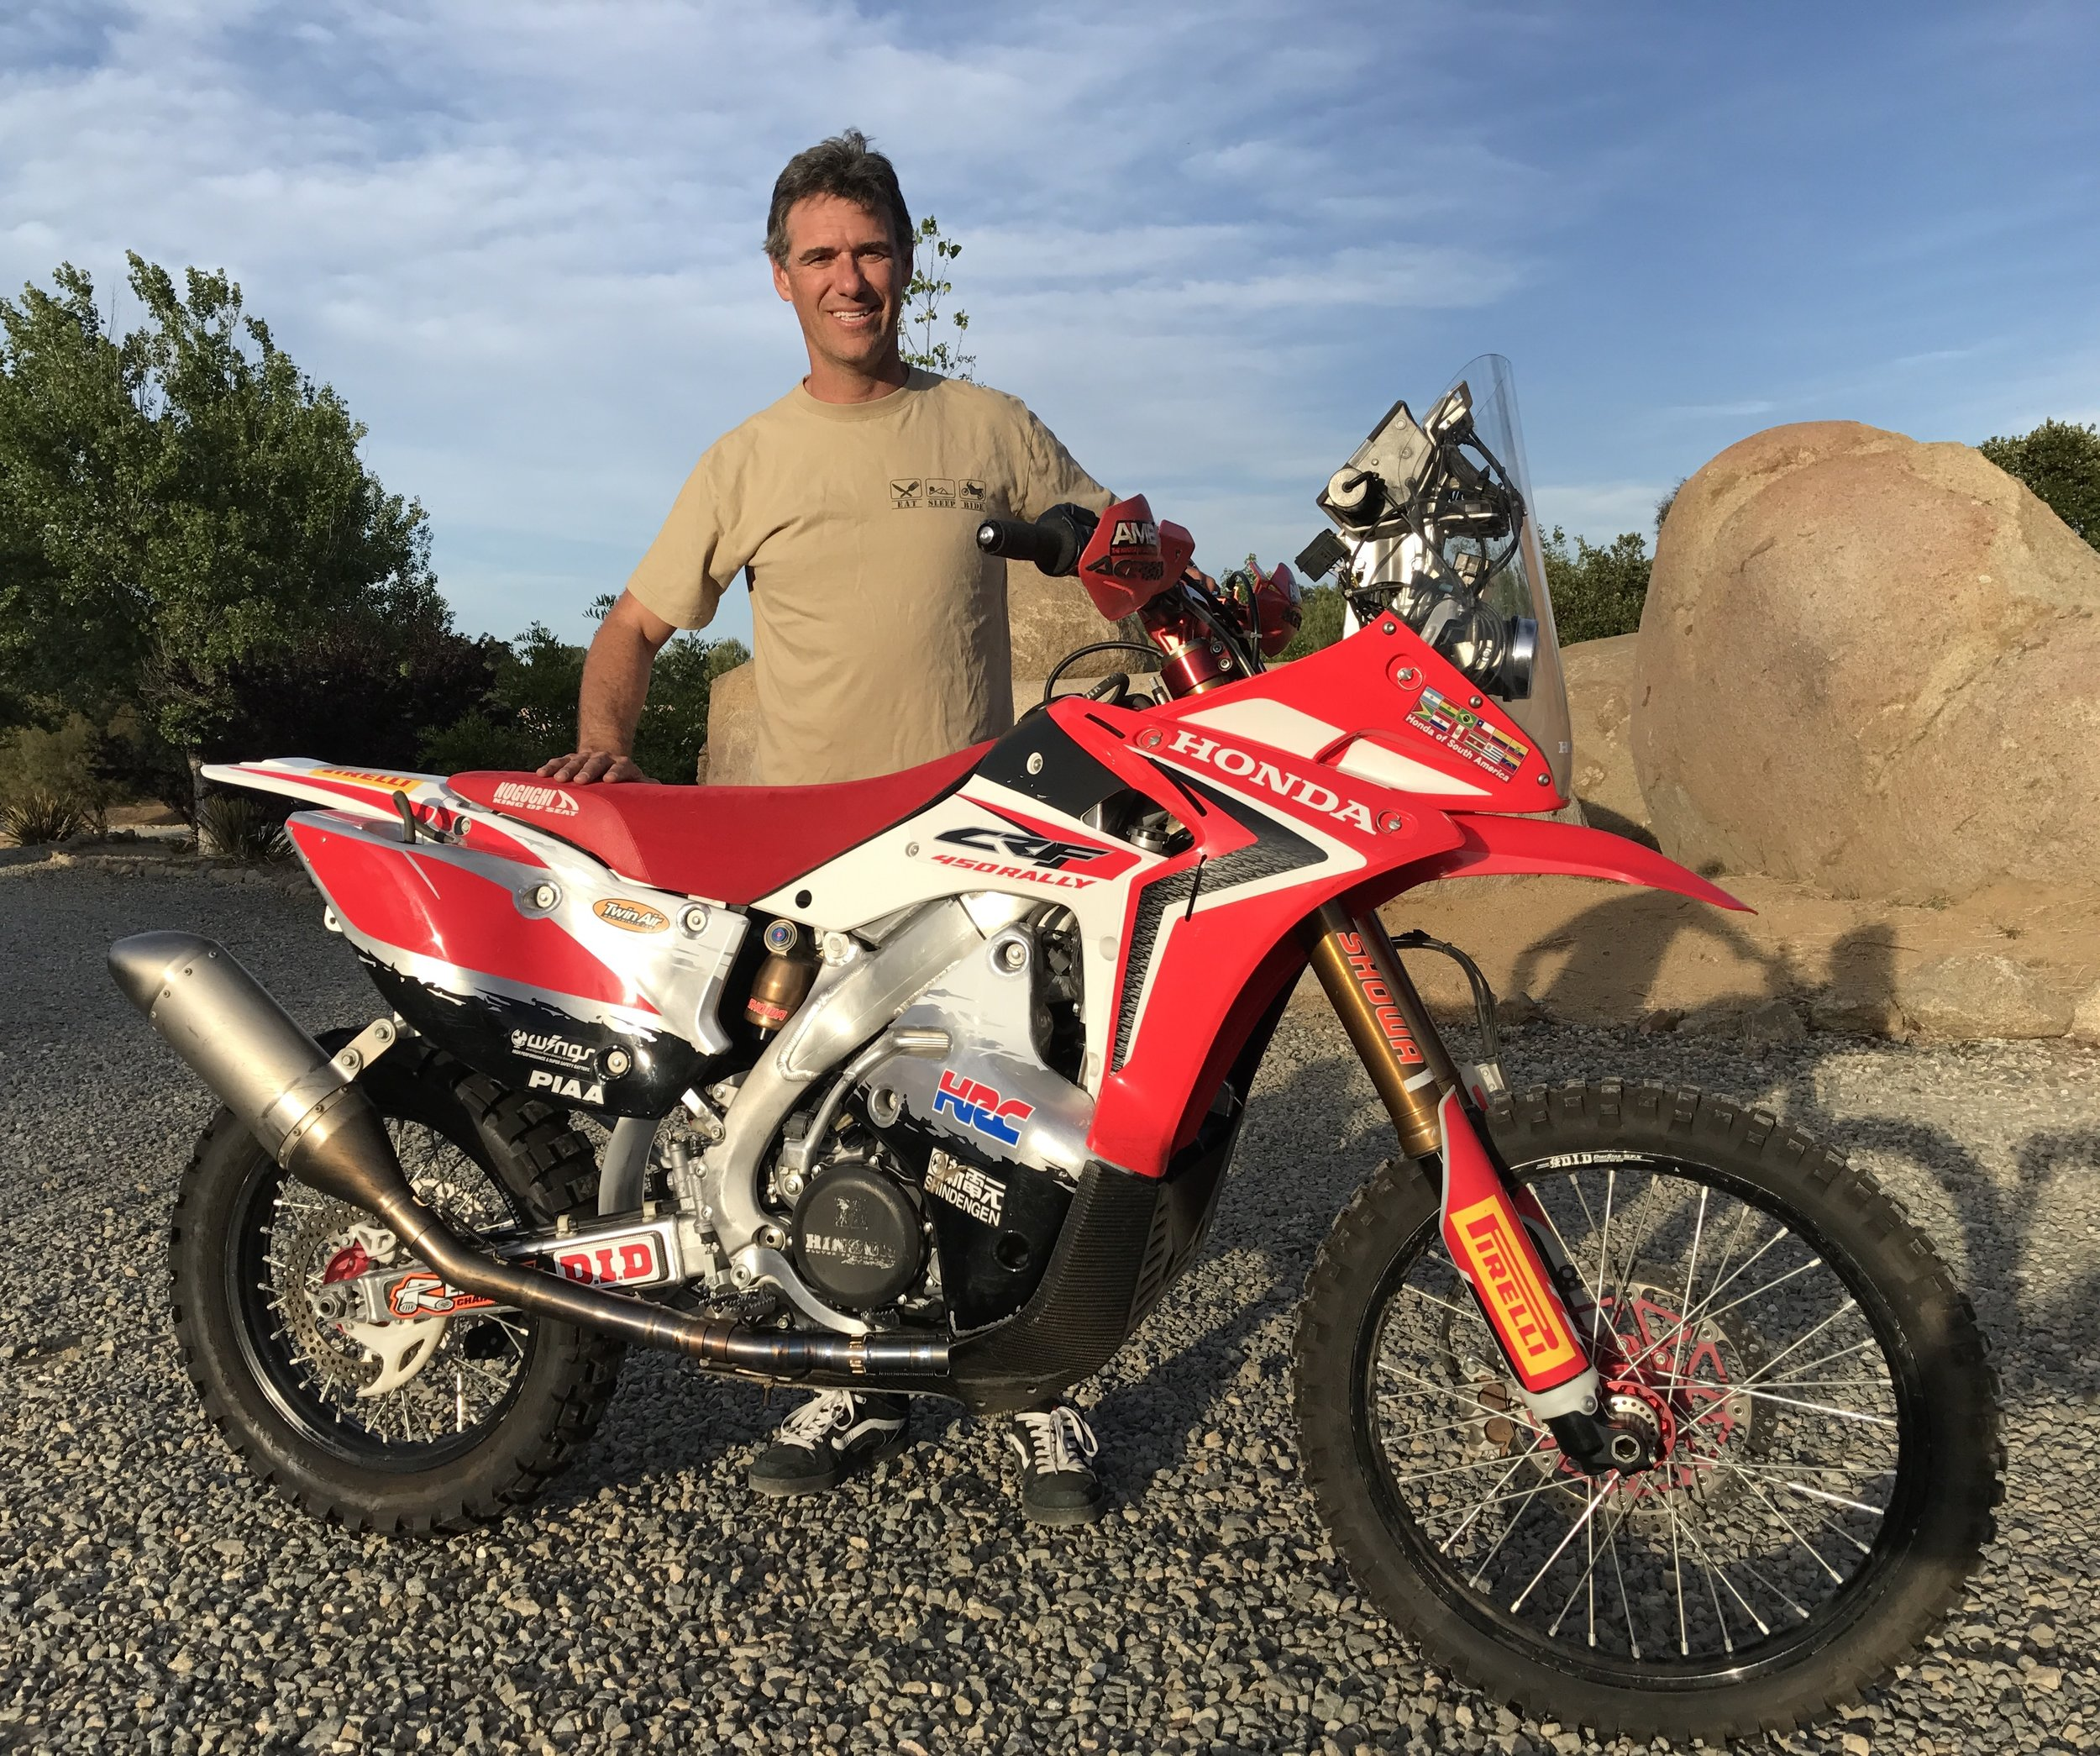 The author with the development bike he raced in the 2013 Dakar Rally. (CJ photo)